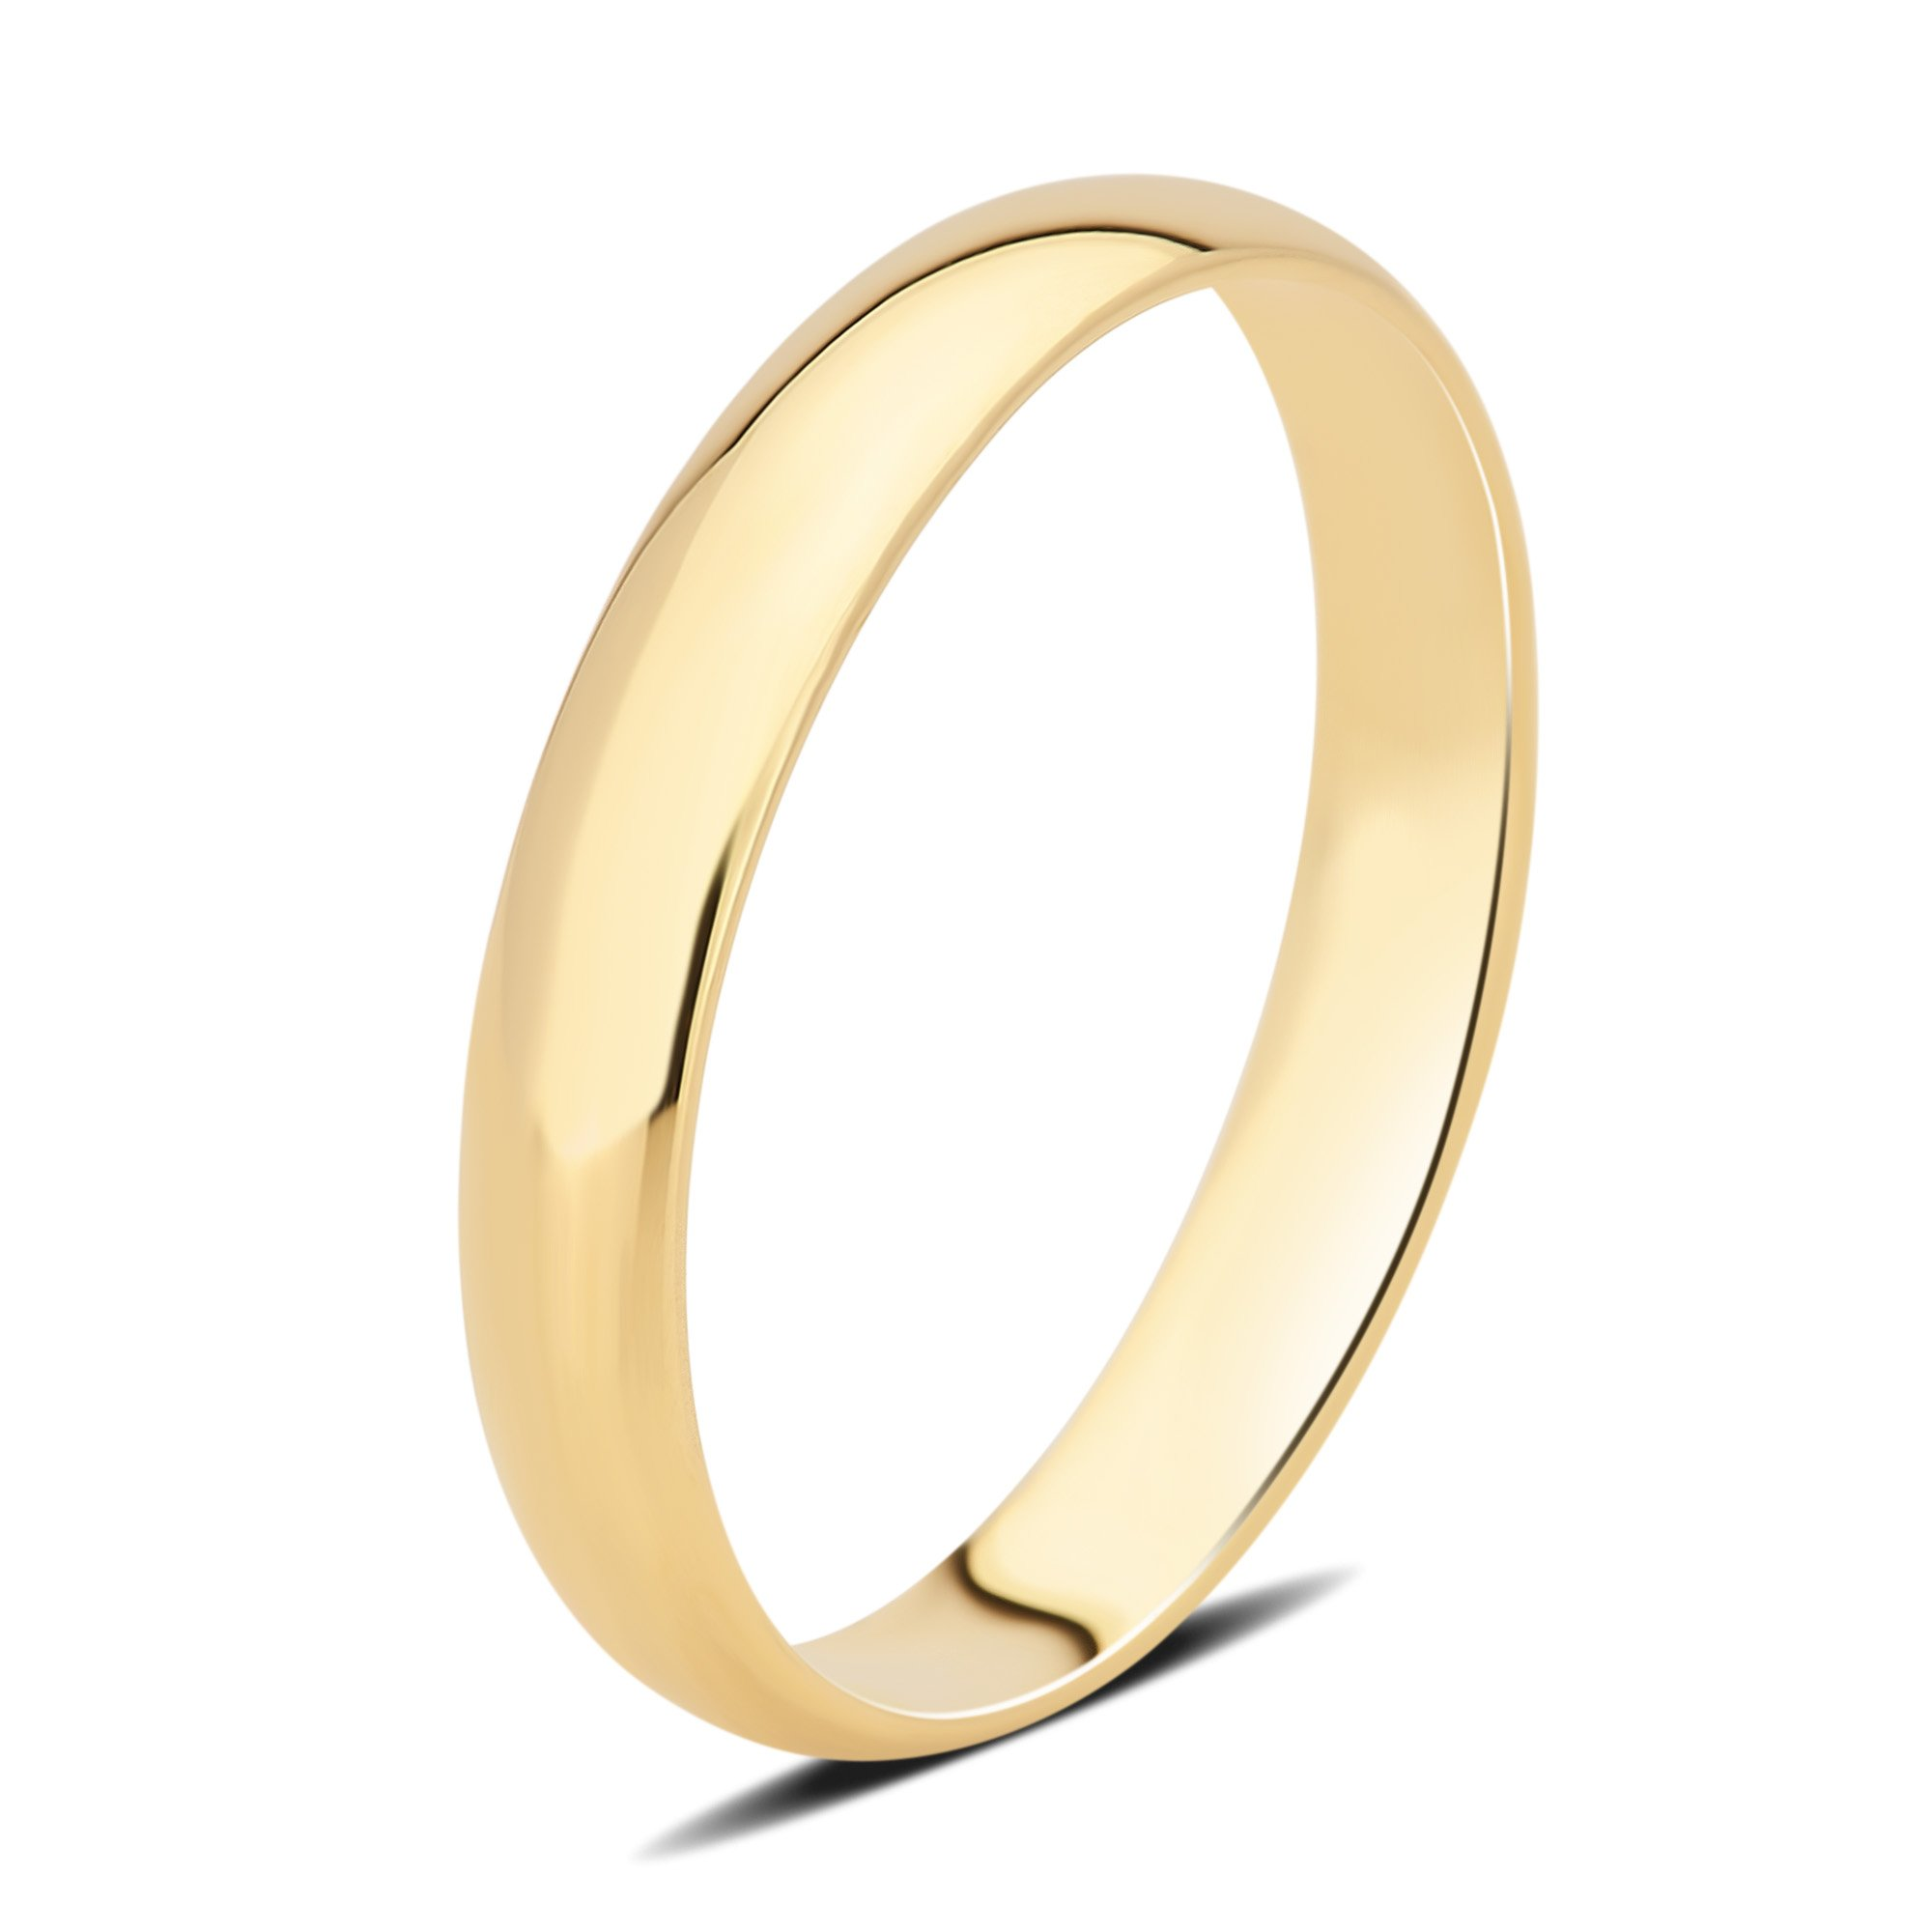 DiamondMuse 3 mm Plain Wedding Band in 10K Yellow Gold